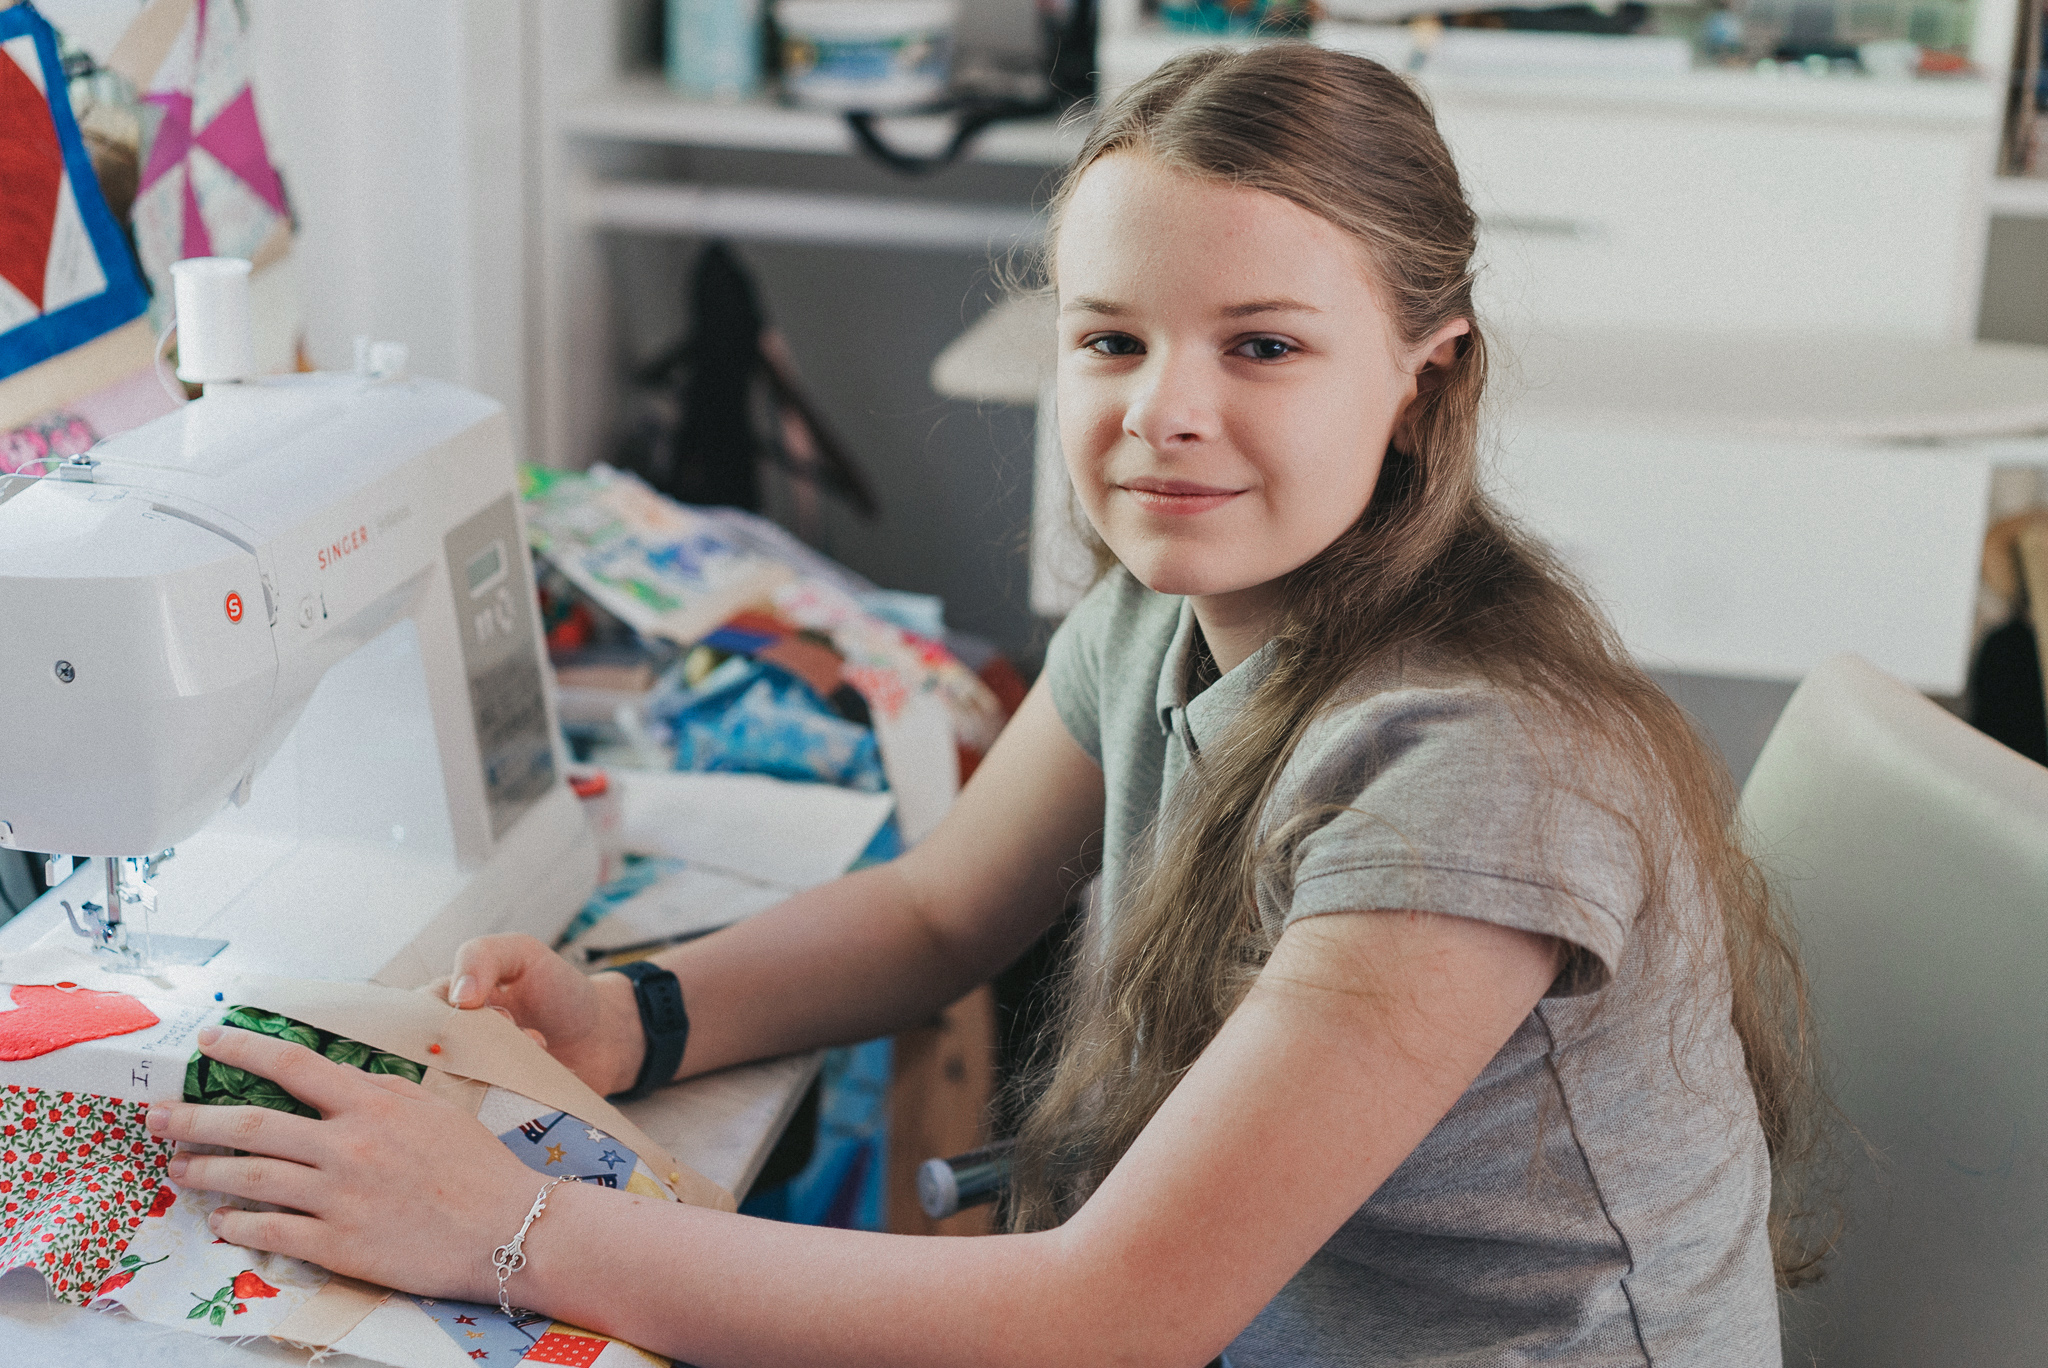 Madeleine Fugate, a 14-year-old in Los Angeles, California, working on a COVID Memorial quilt.